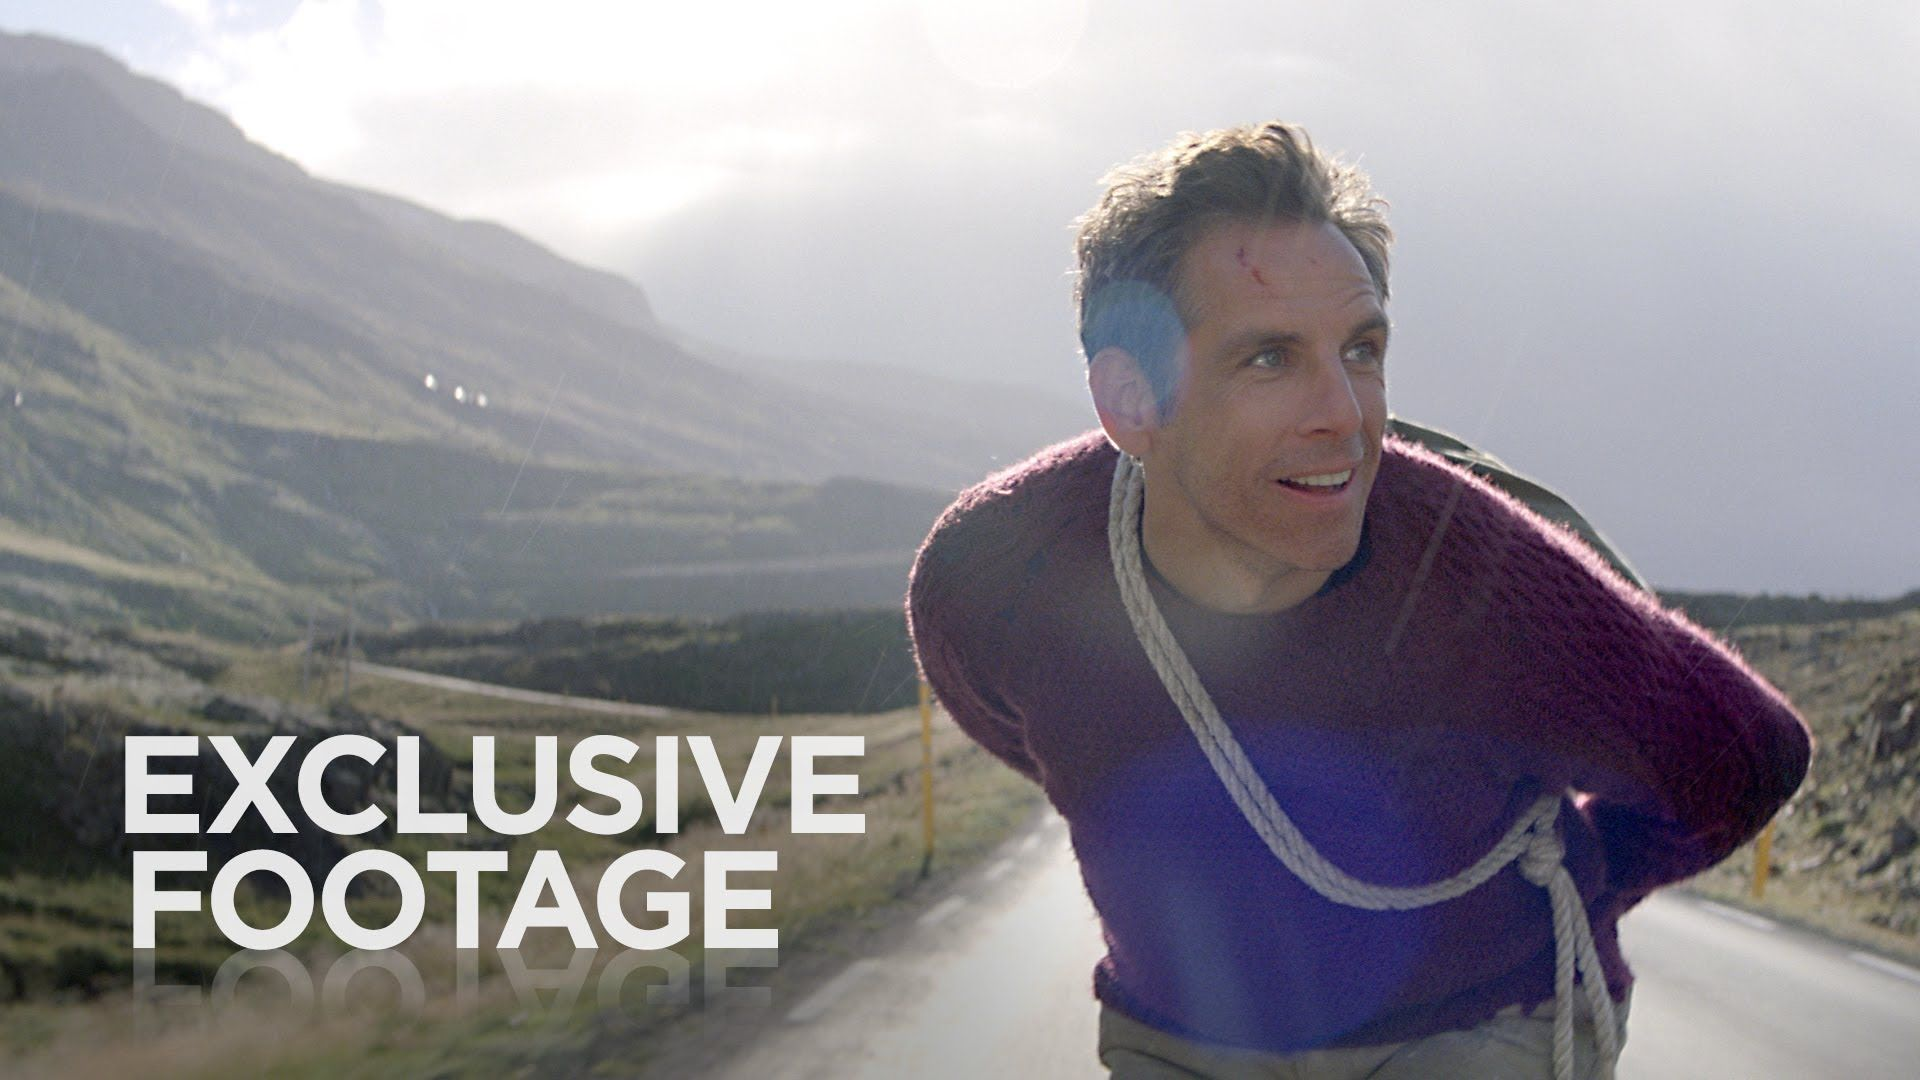 The Secret Life Of Walter Mitty 2013 Exclusive Footage 20th